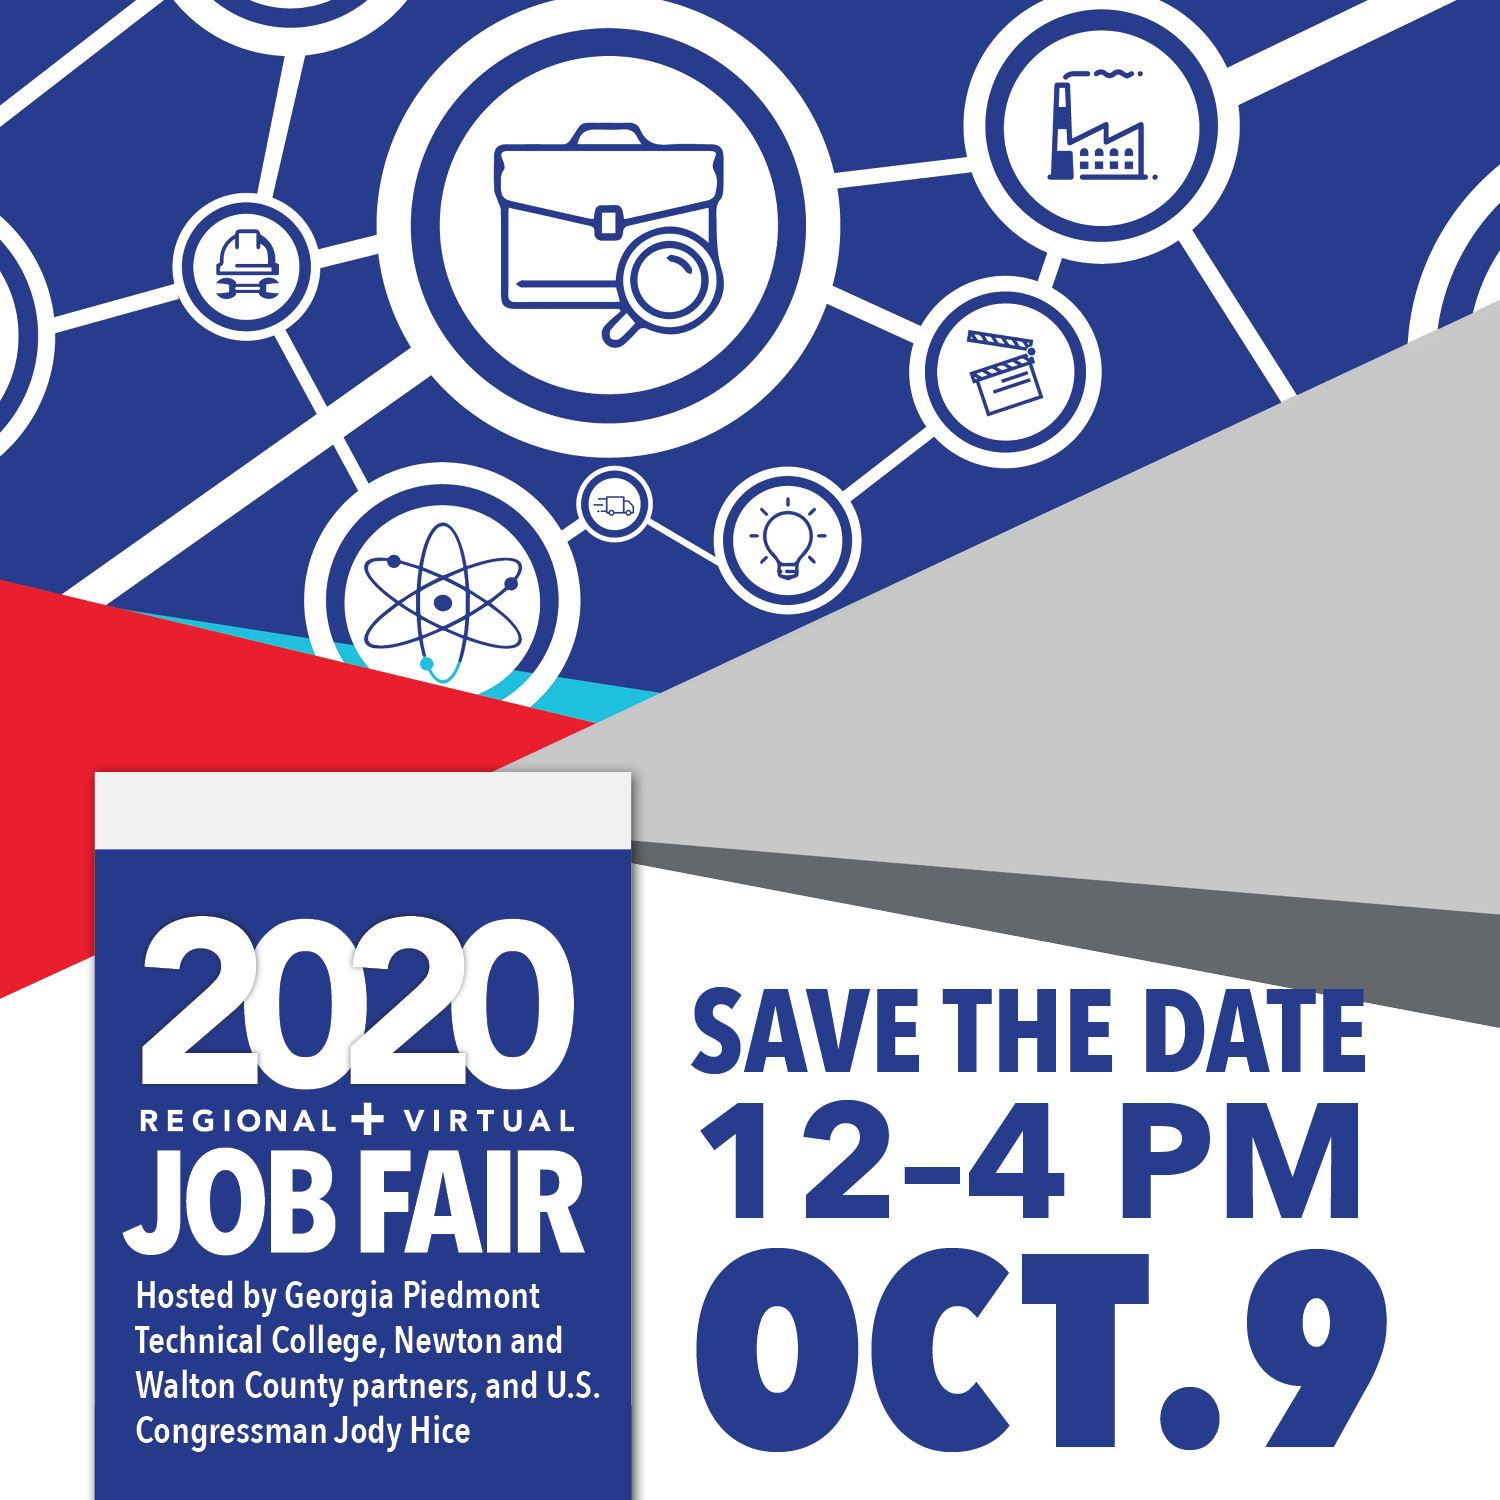 Image of Regional Job Fair Save the Date